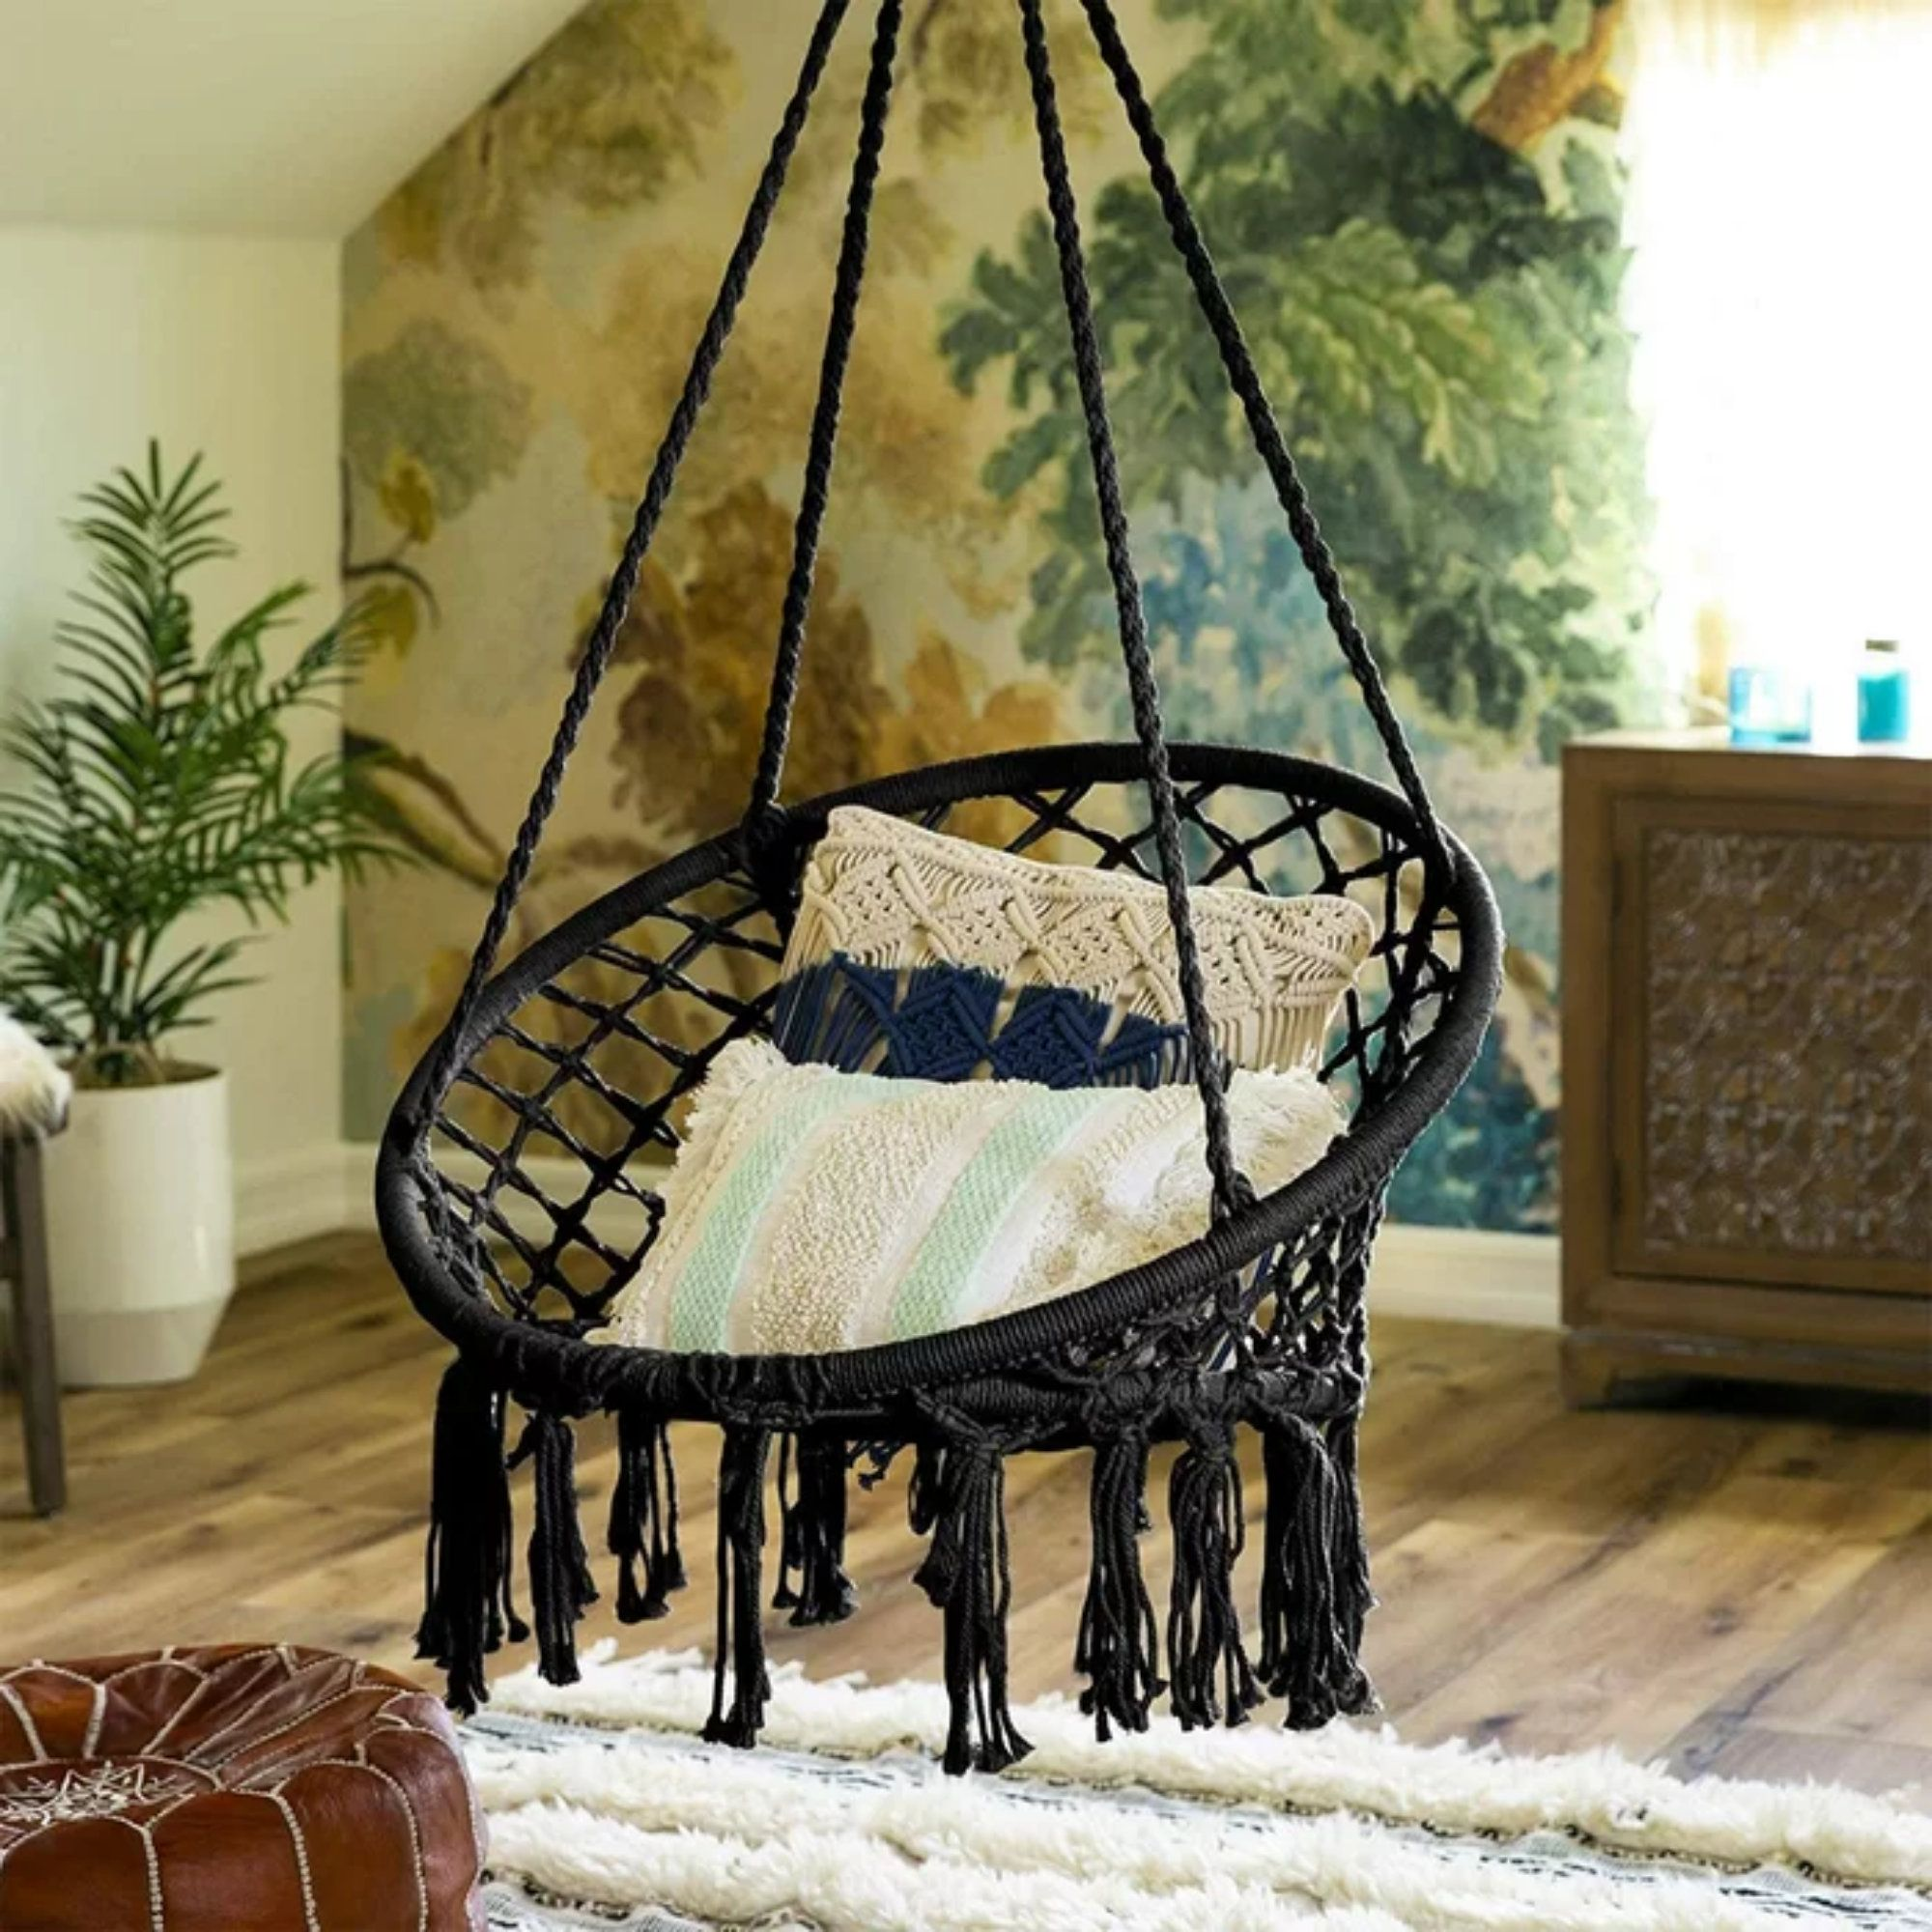 Handmade Macrame Indoor Outdoor Black Round Hammock Swing